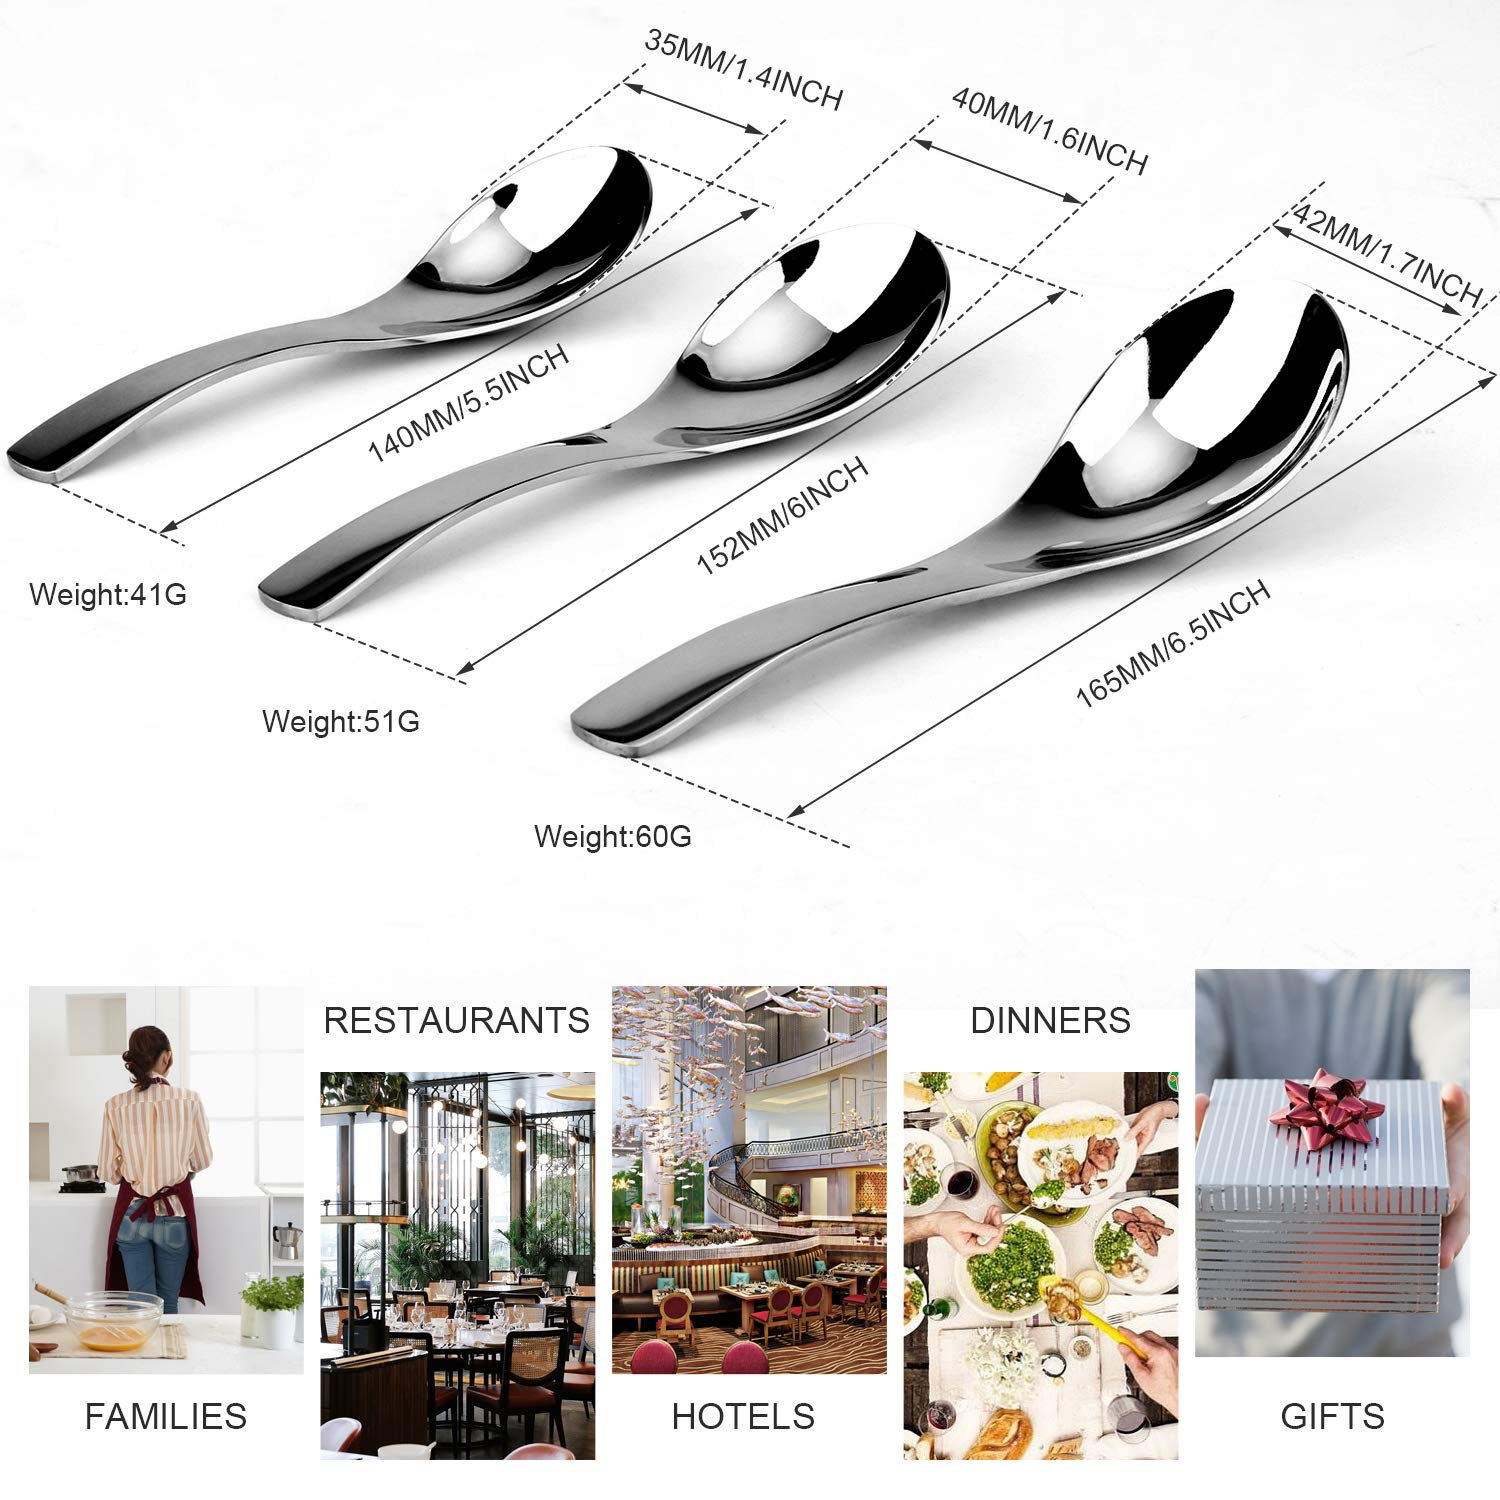 Kitchen Restaurant Party Tableware Serving Utensils 3 Sets of Spoons CARIHOME Stainless Steel Serving Spoons For Buffet Can Banquet Cooking Kitchen Basics